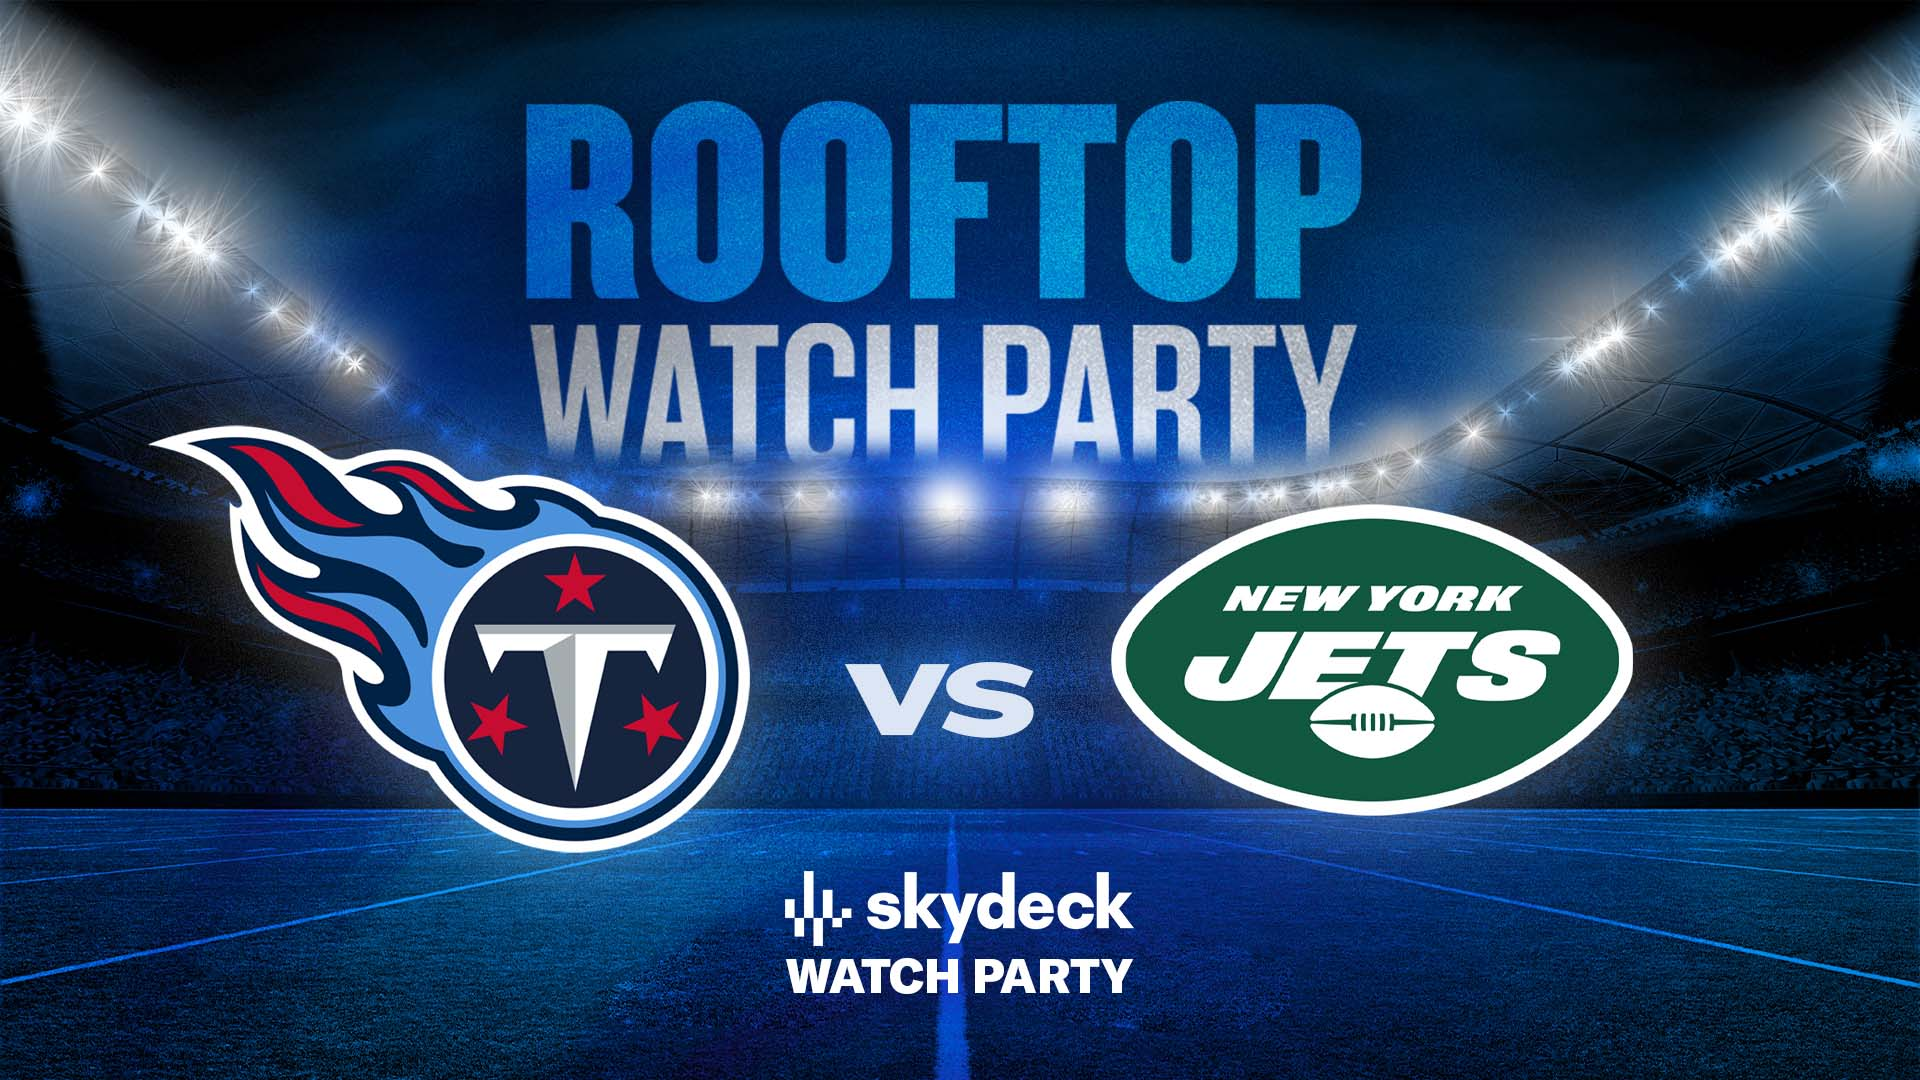 Promo image of Titans vs. Jets Skydeck Watch Party